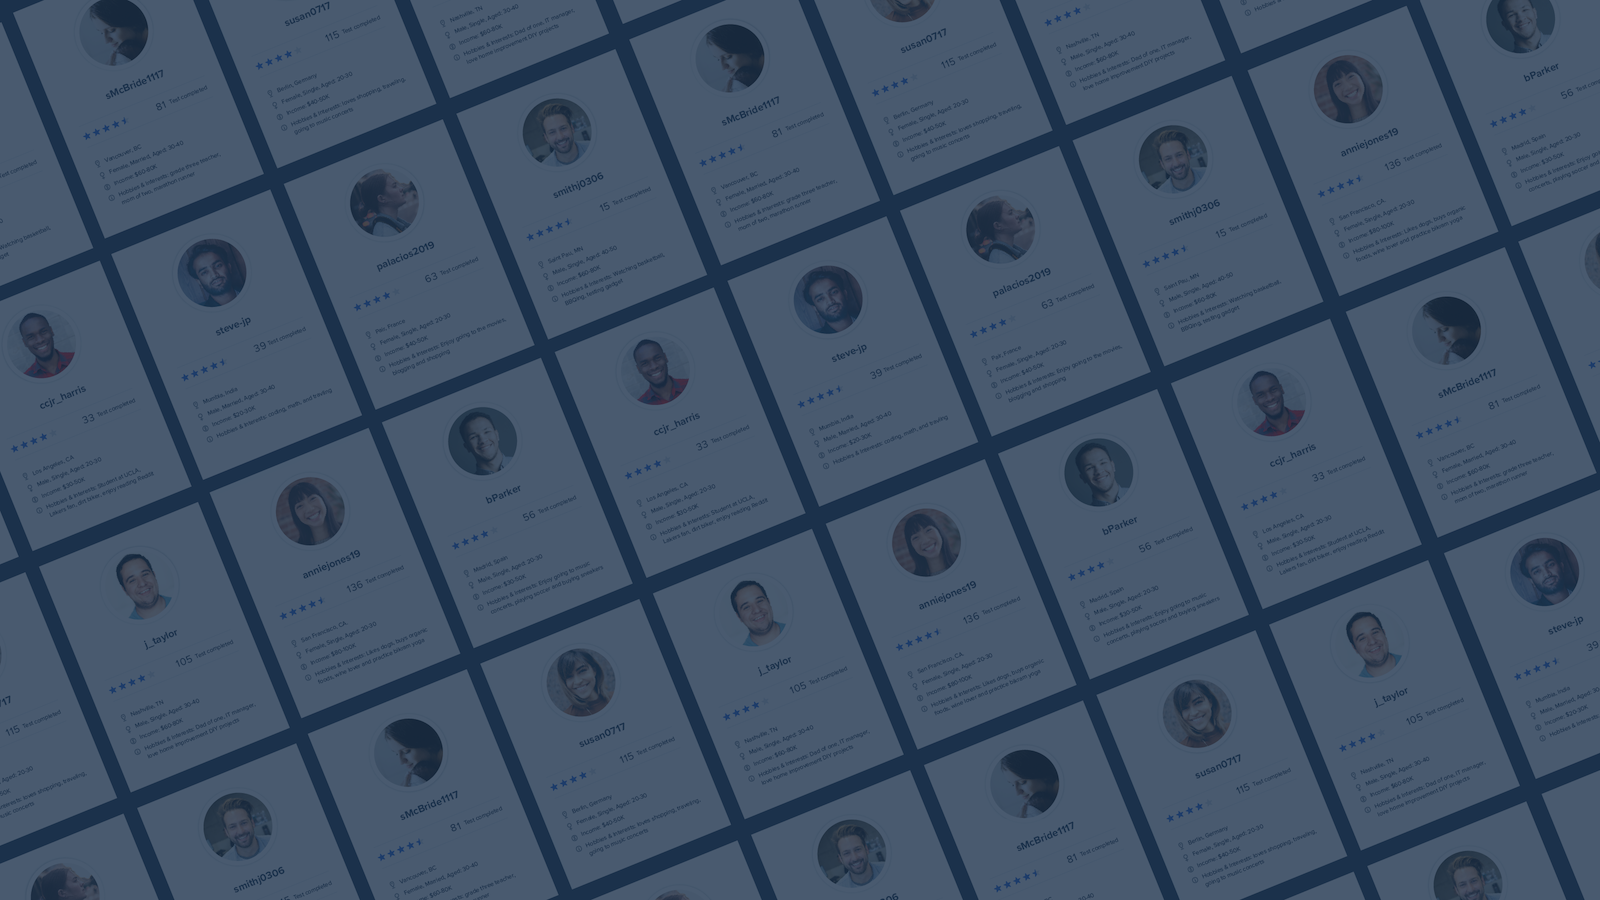 Connect with your own audiences through UserTesting's My Panel